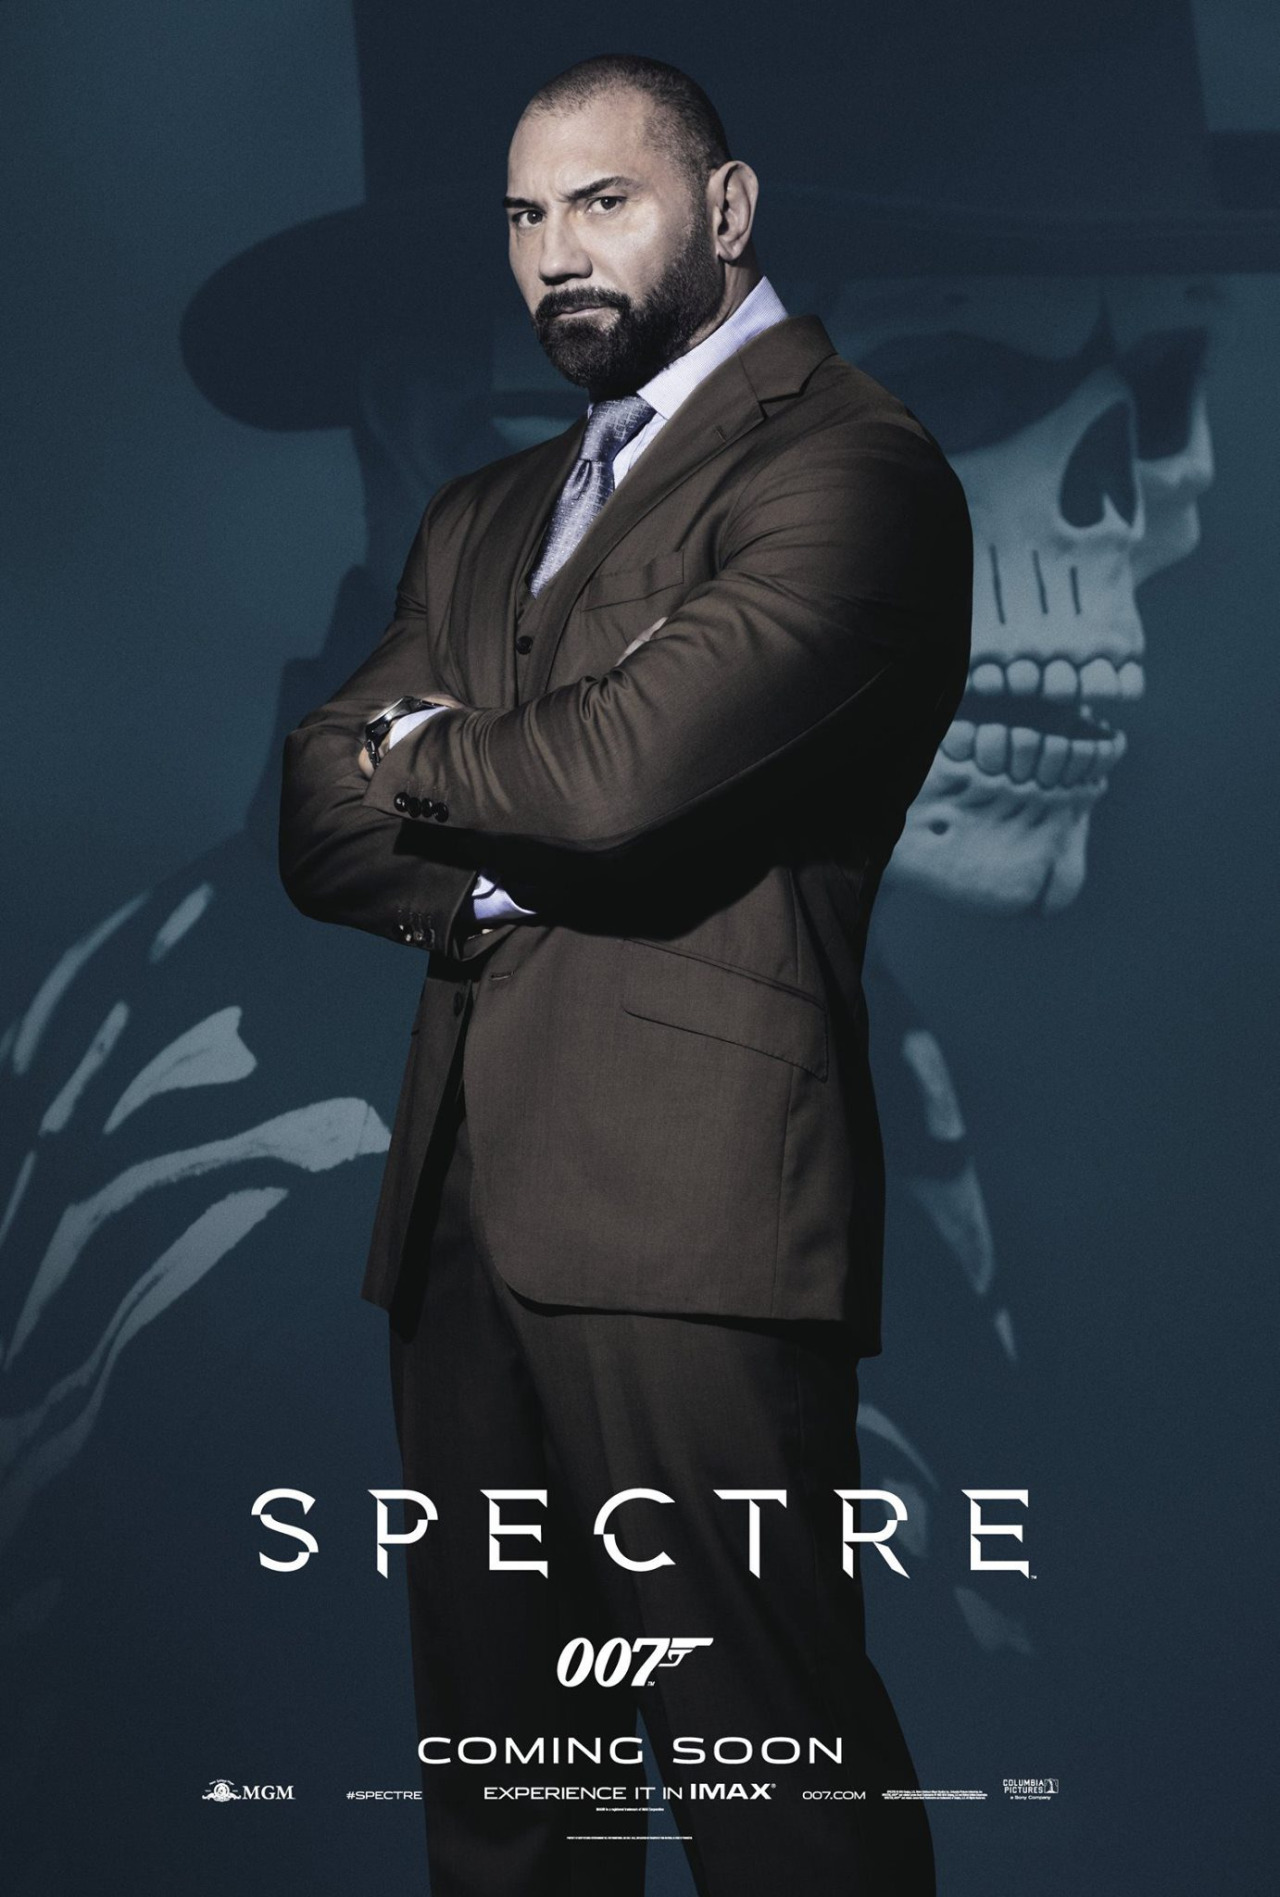 8 Extraits De James Bond 007 Spectre Actu Film